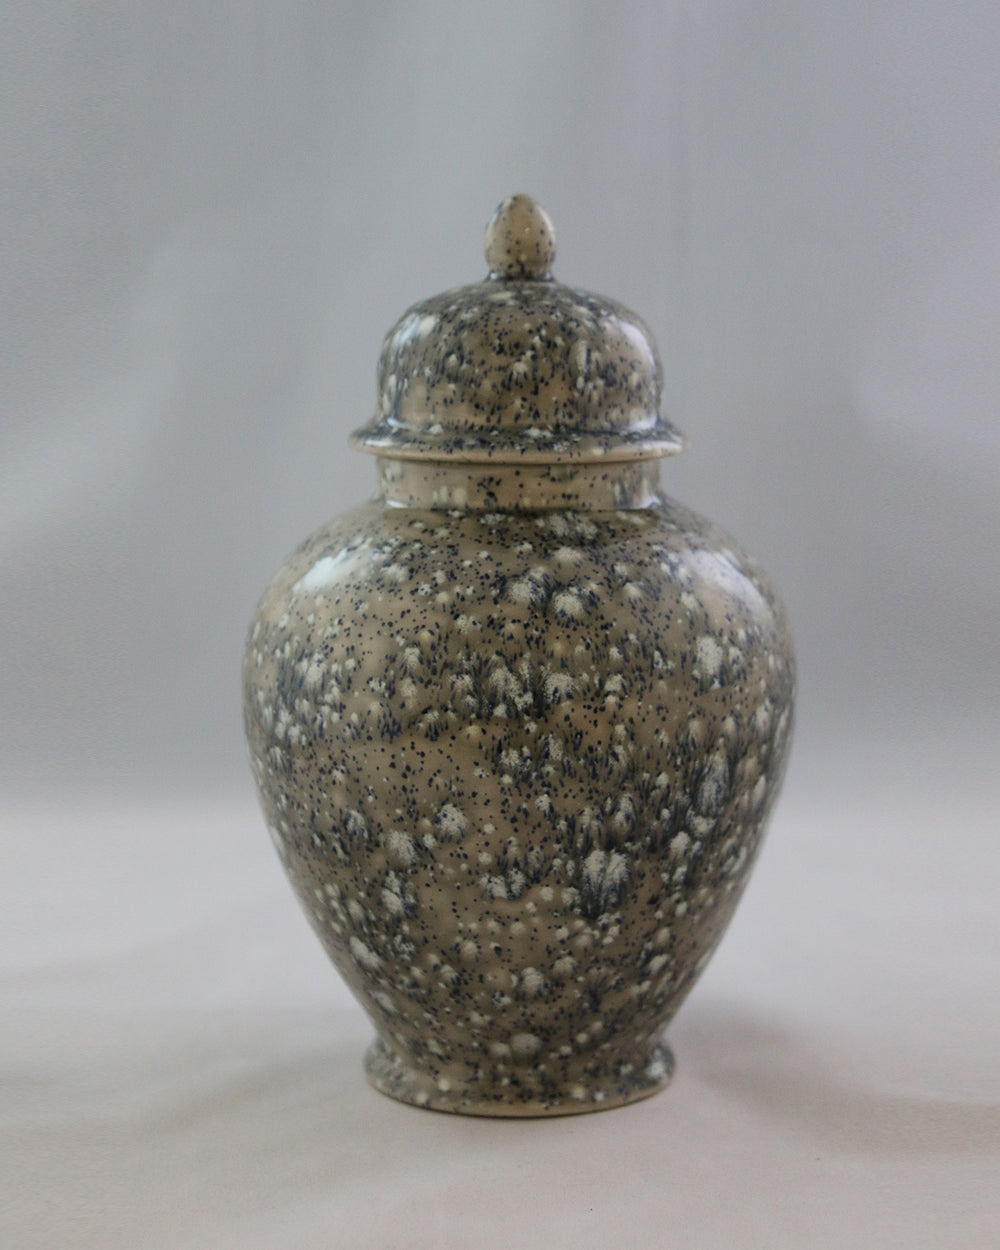 Hancrafted Ceramic Urn - Cosmic - Medium